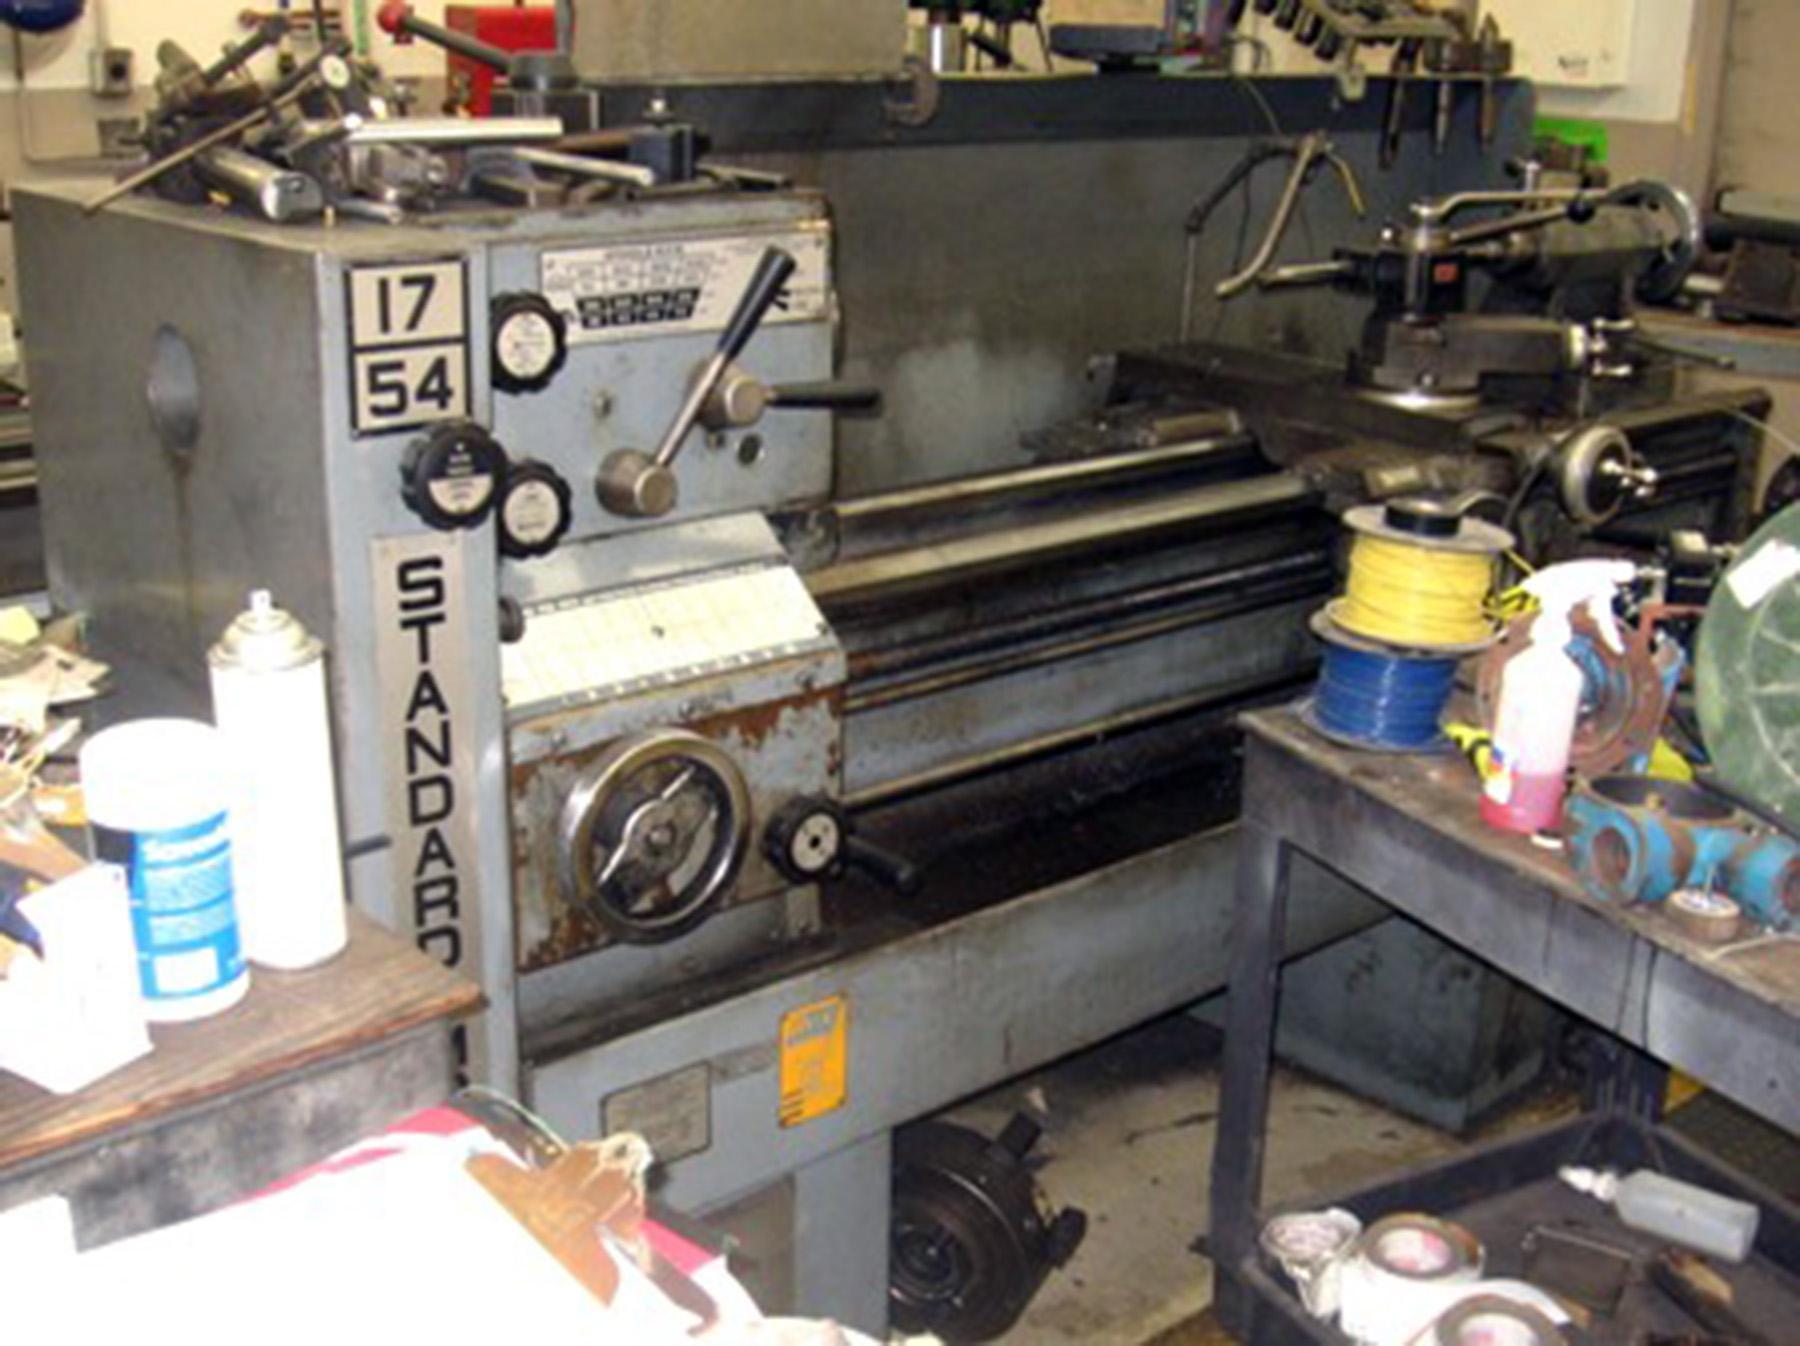 USED, STANDARD MODERN MODEL 17-54 ENGINE LATHE